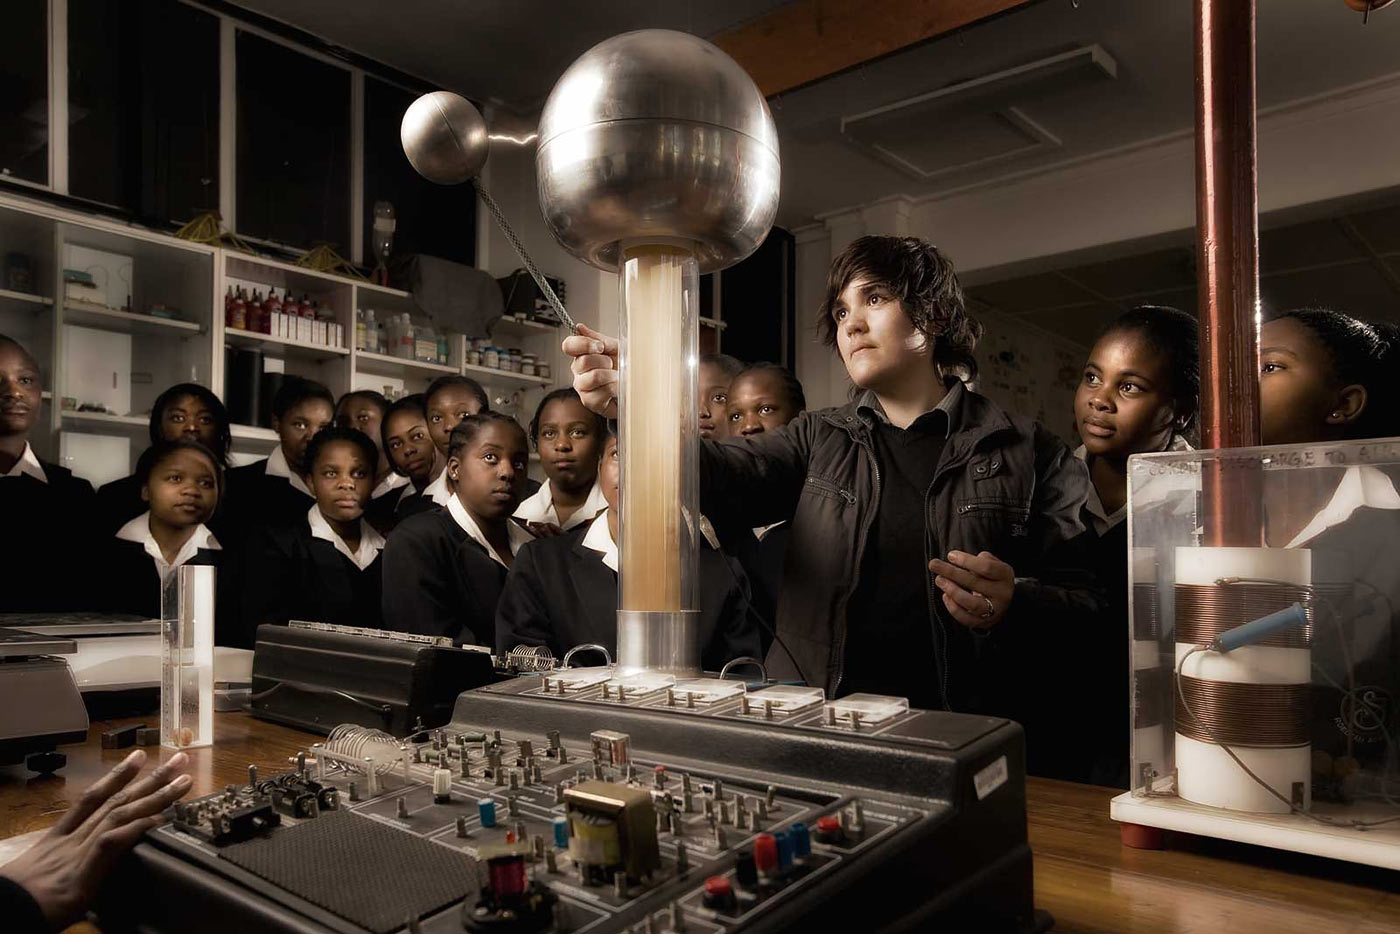 Science class for young students - CSI photographic portfolio